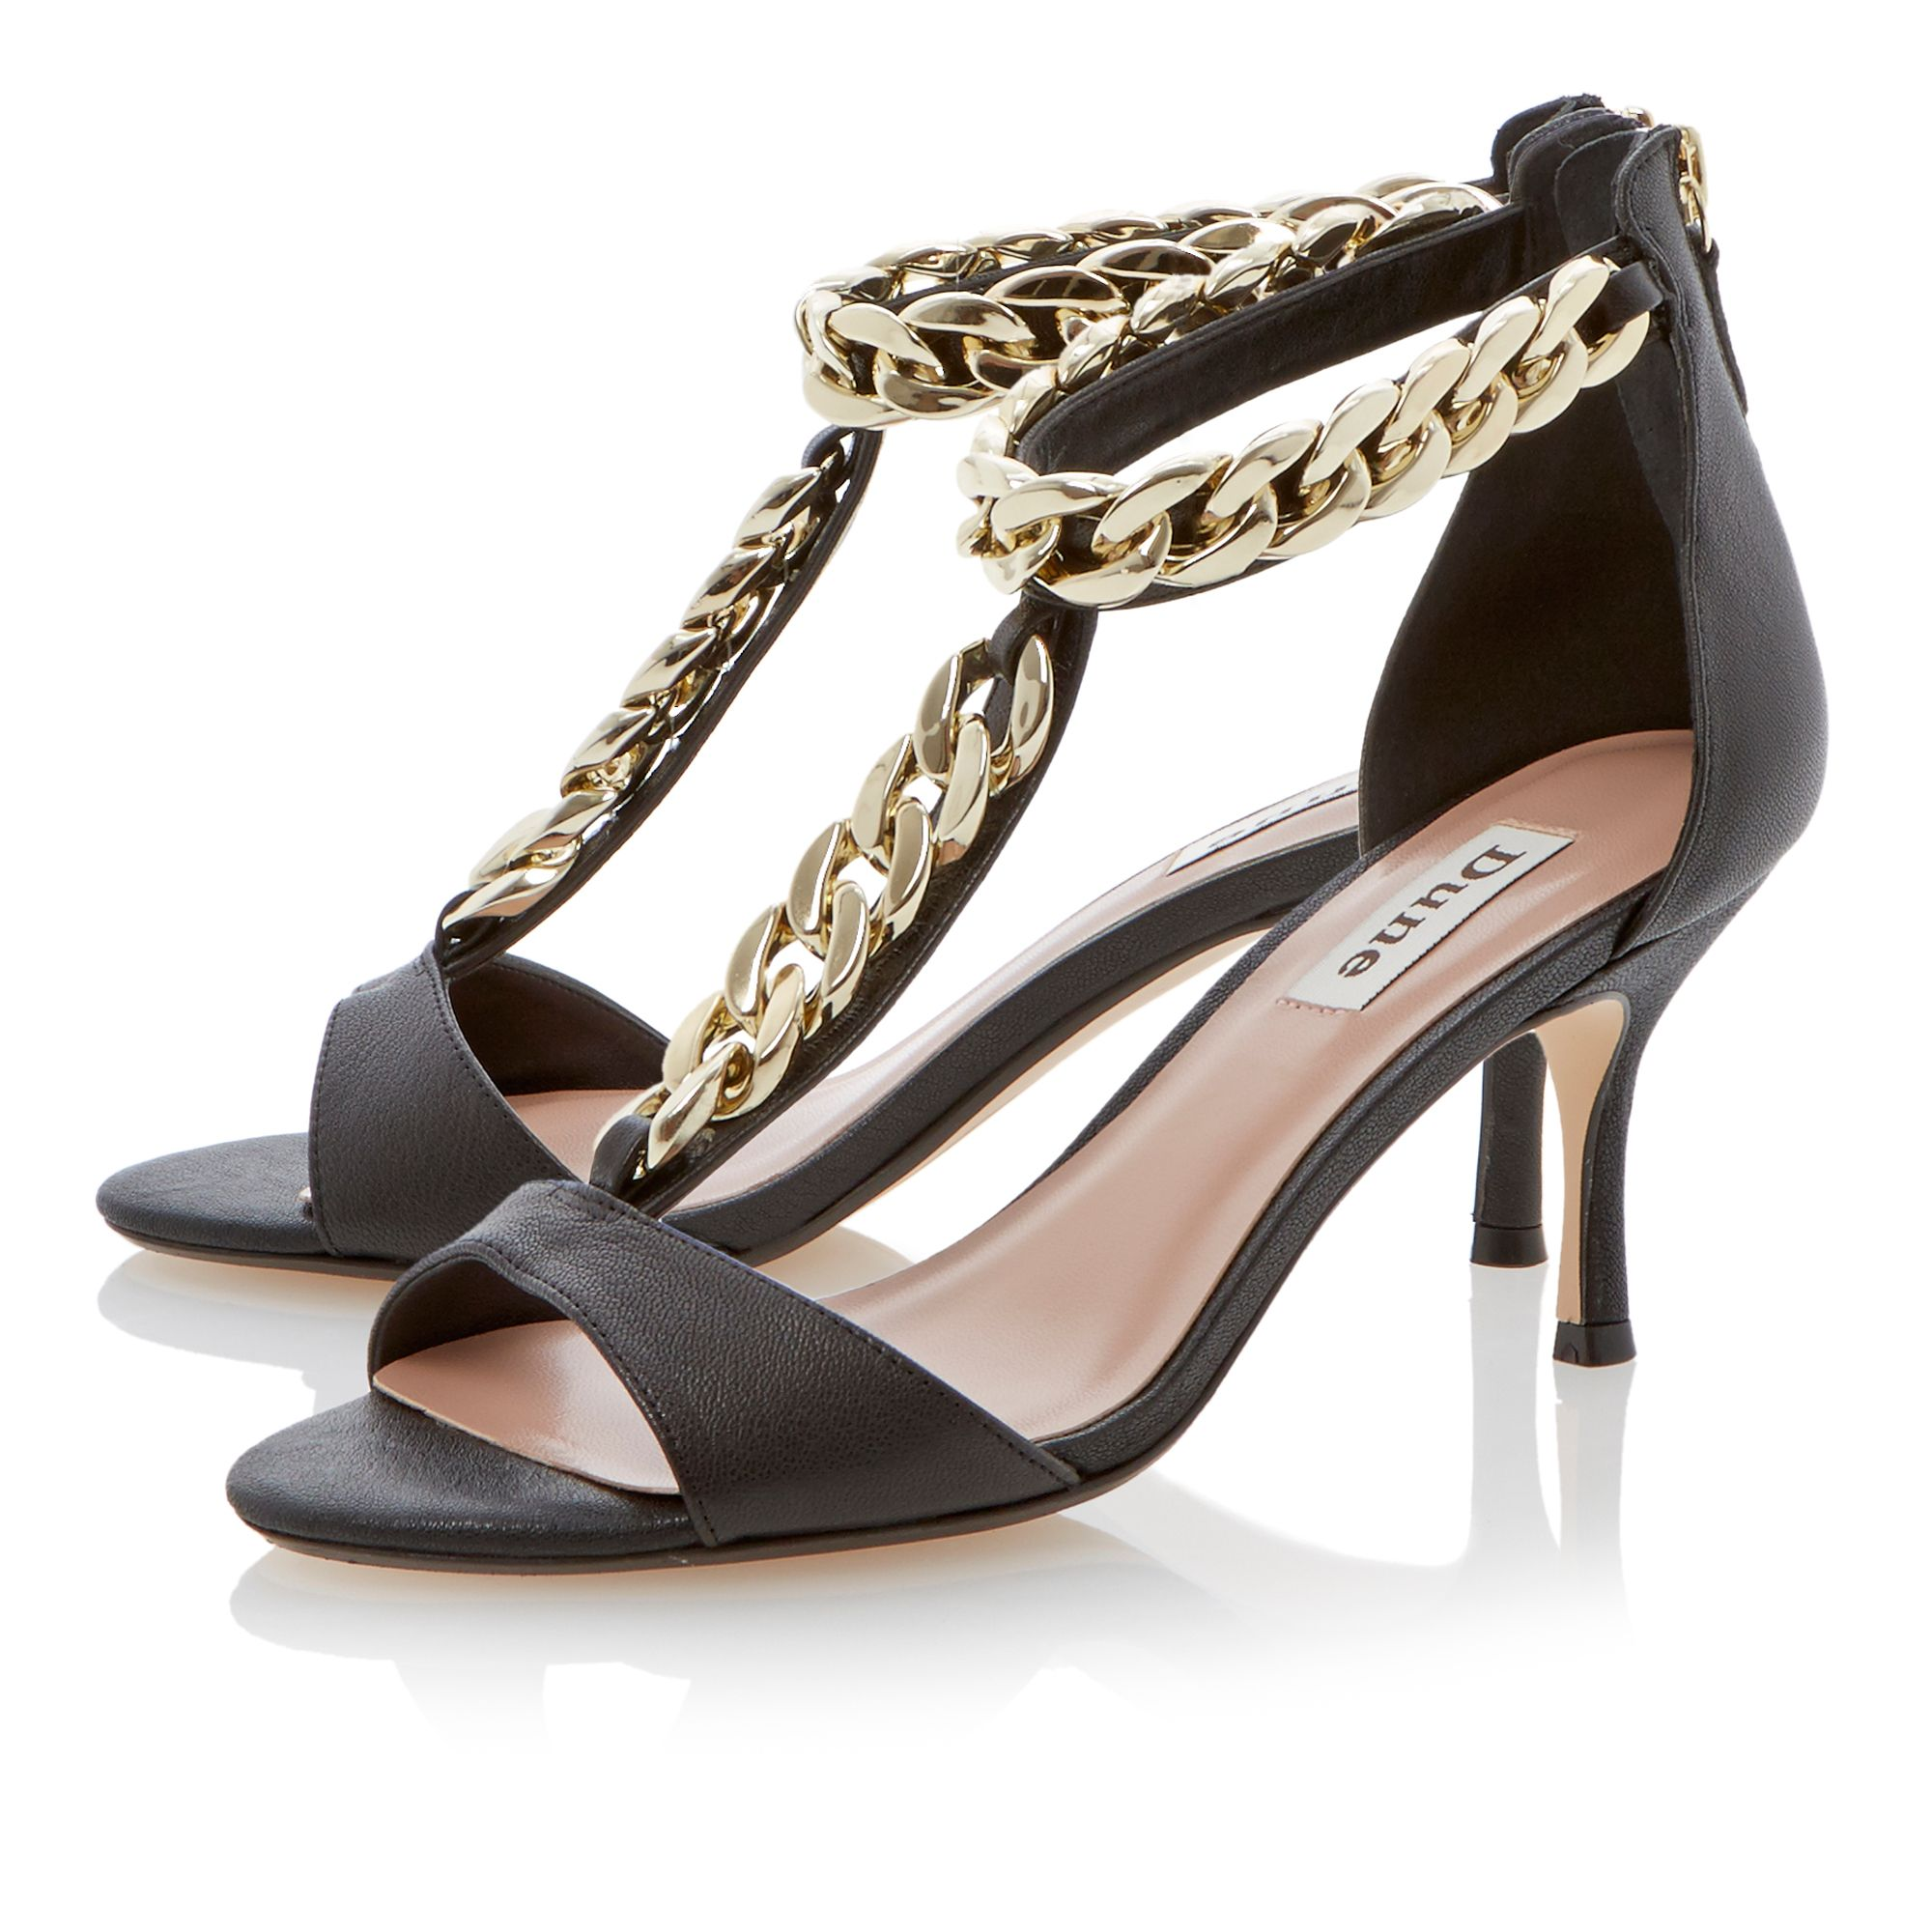 Heroine chain t-bar sandals